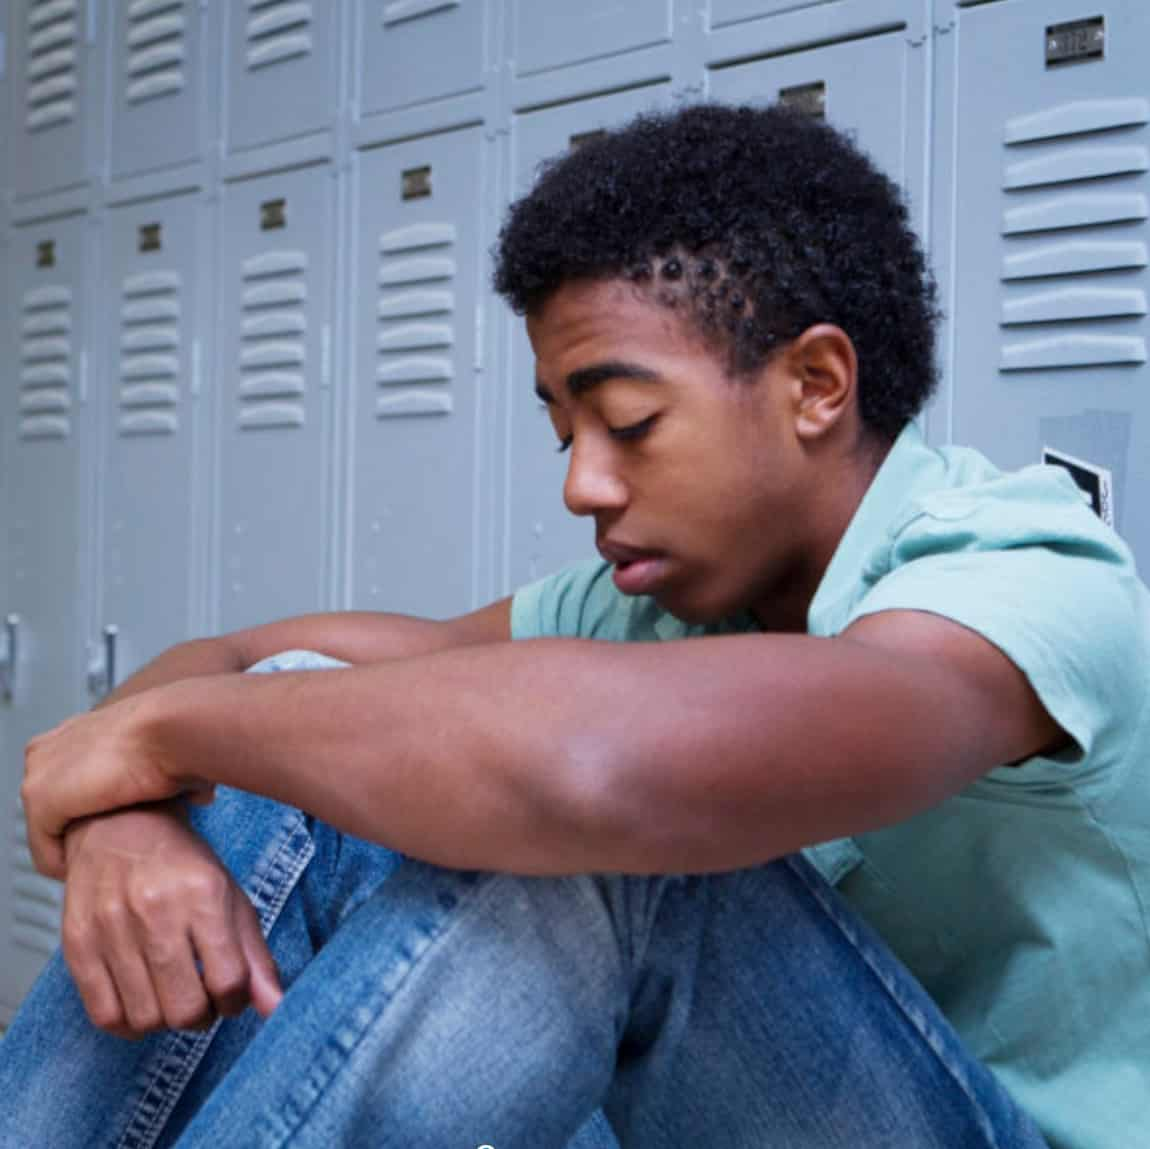 teen suicidal thoughts